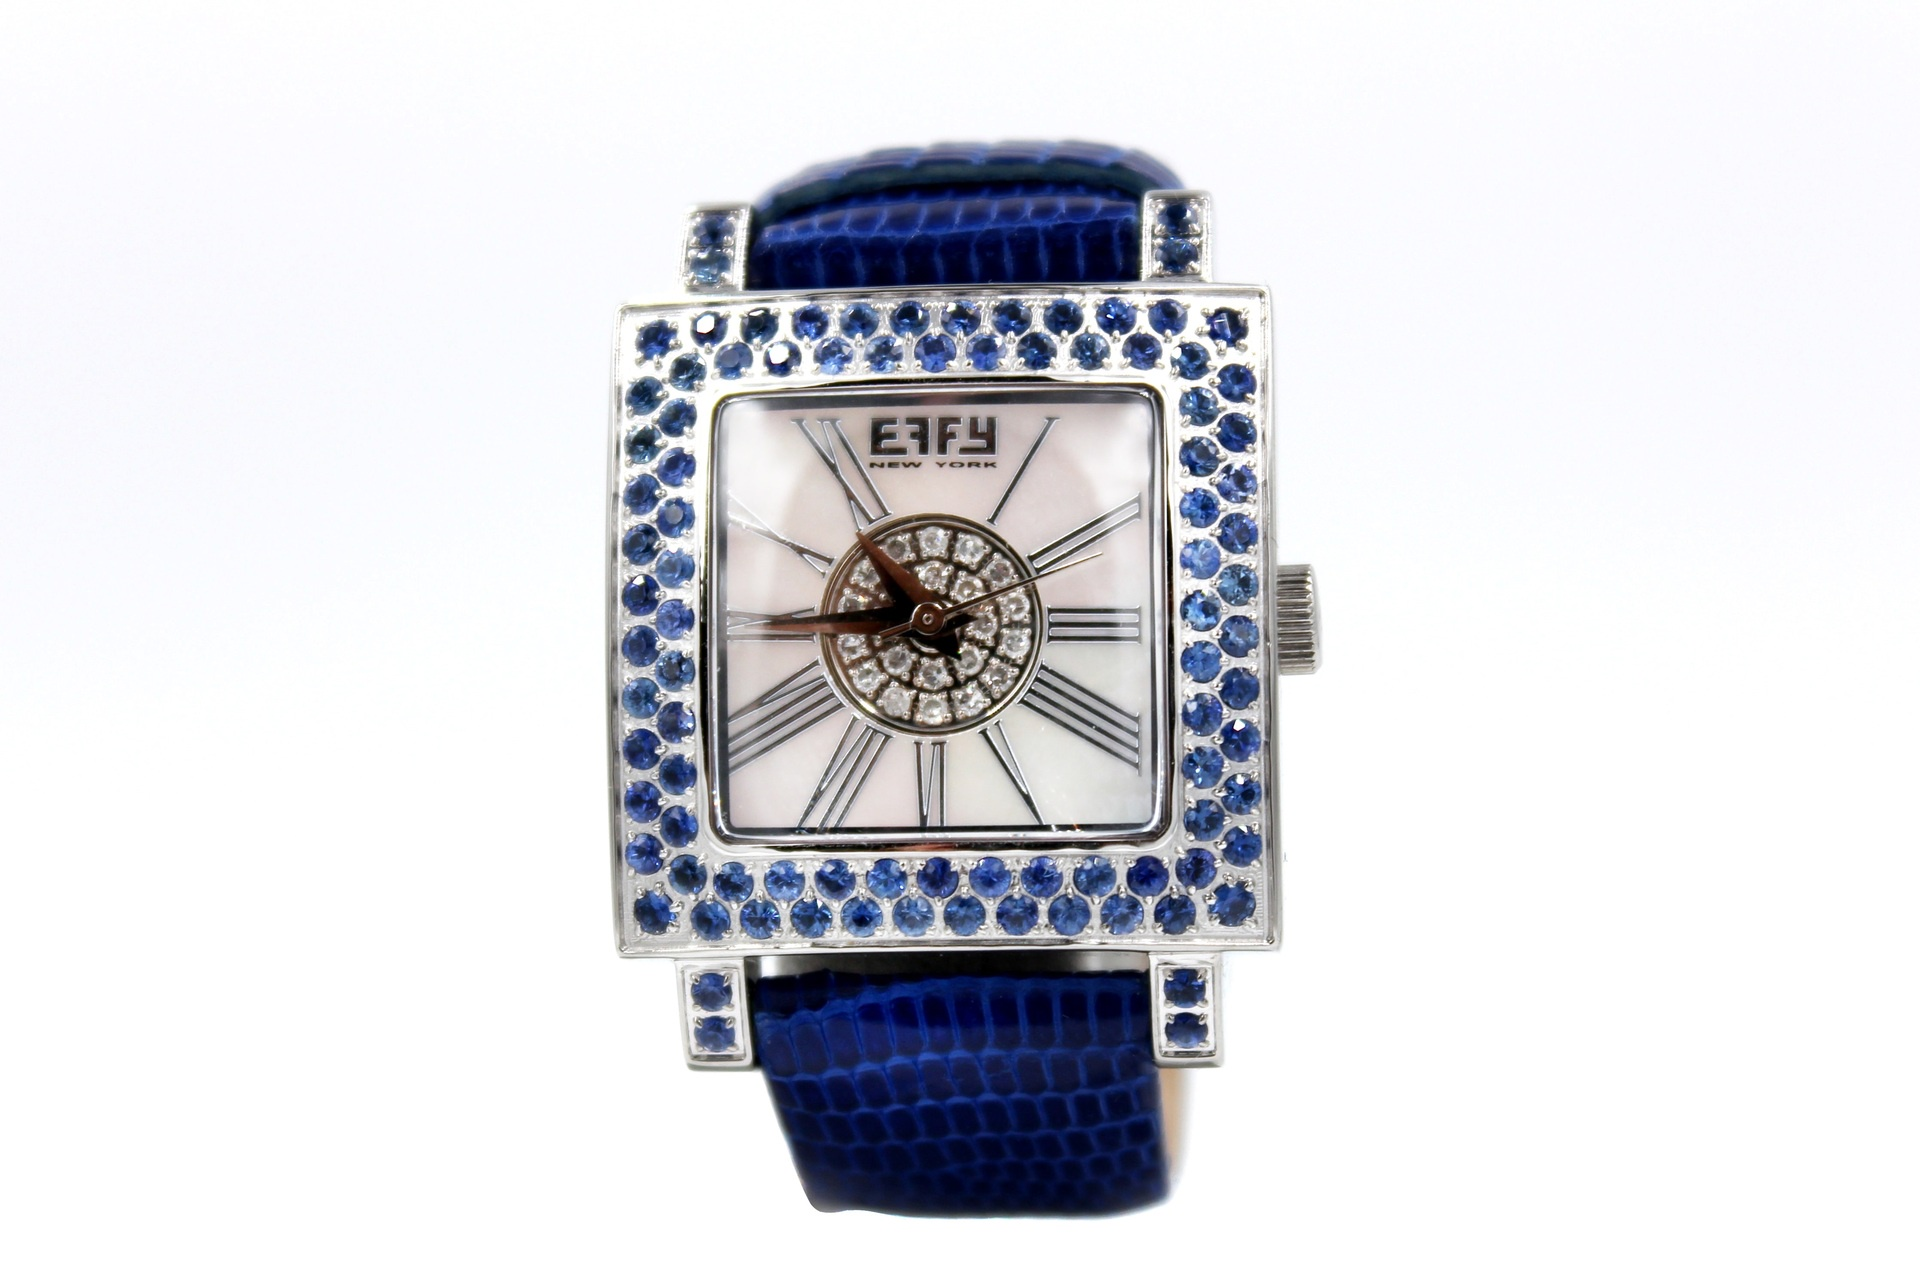 Effy Time Square Sapphire Mother-of-Pearl Dial Unisex Watch